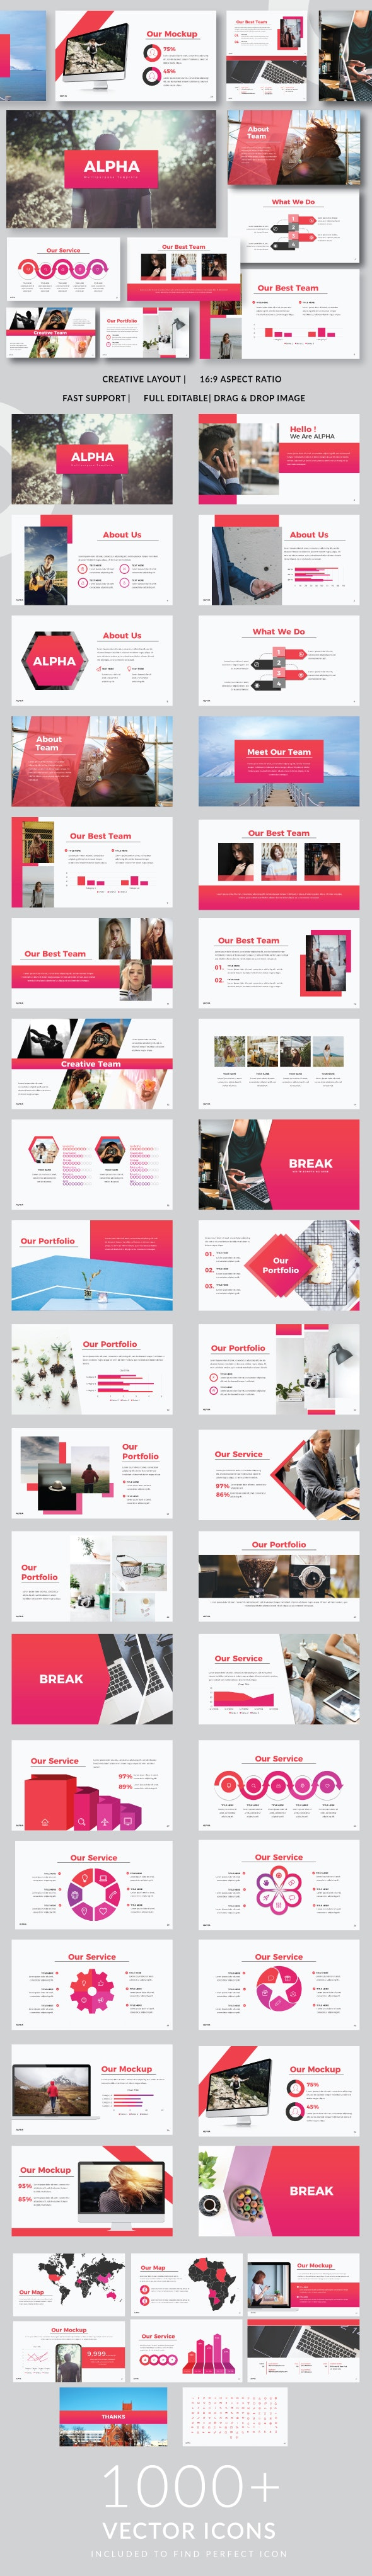 Alpha Powerpoint Templates - PowerPoint Templates Presentation Templates